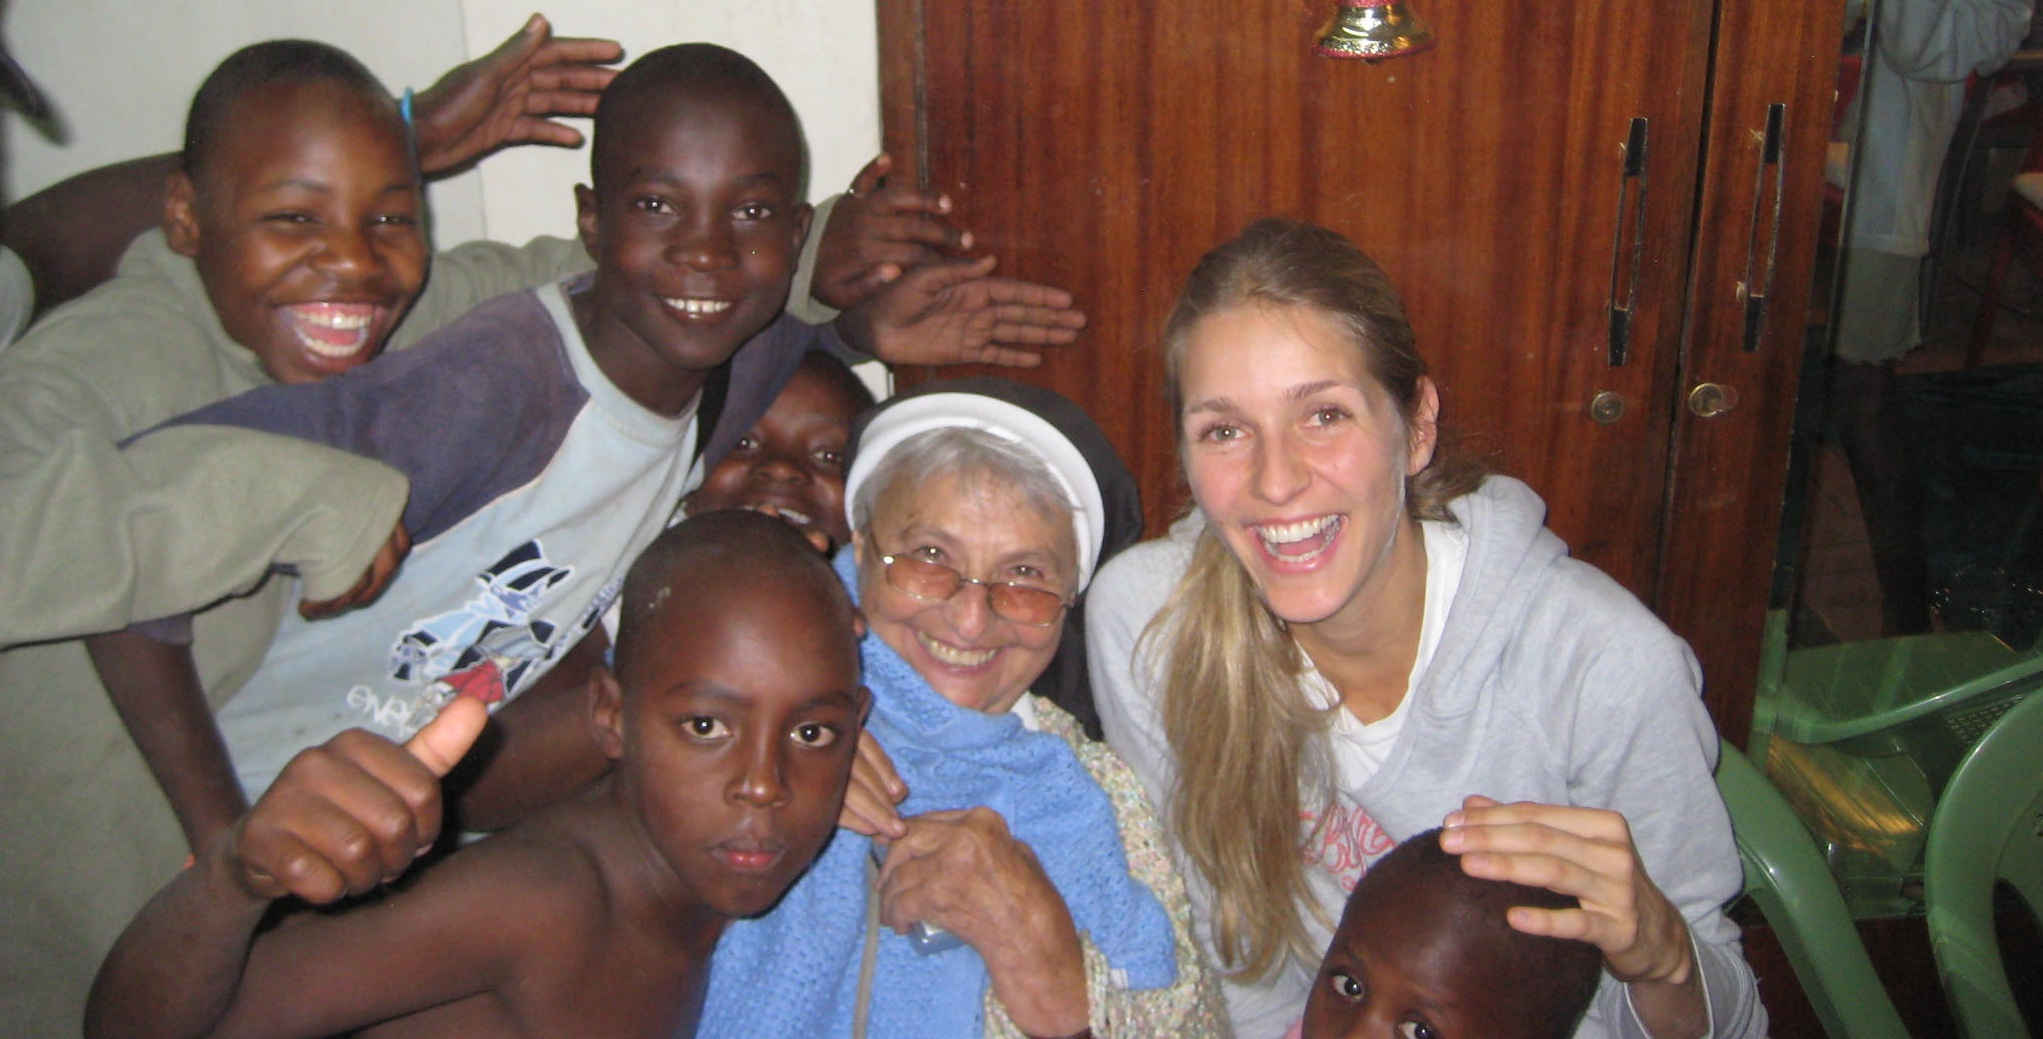 Kinder in der Mission Thika in Kenia mit Schwester Luise Radlmeier